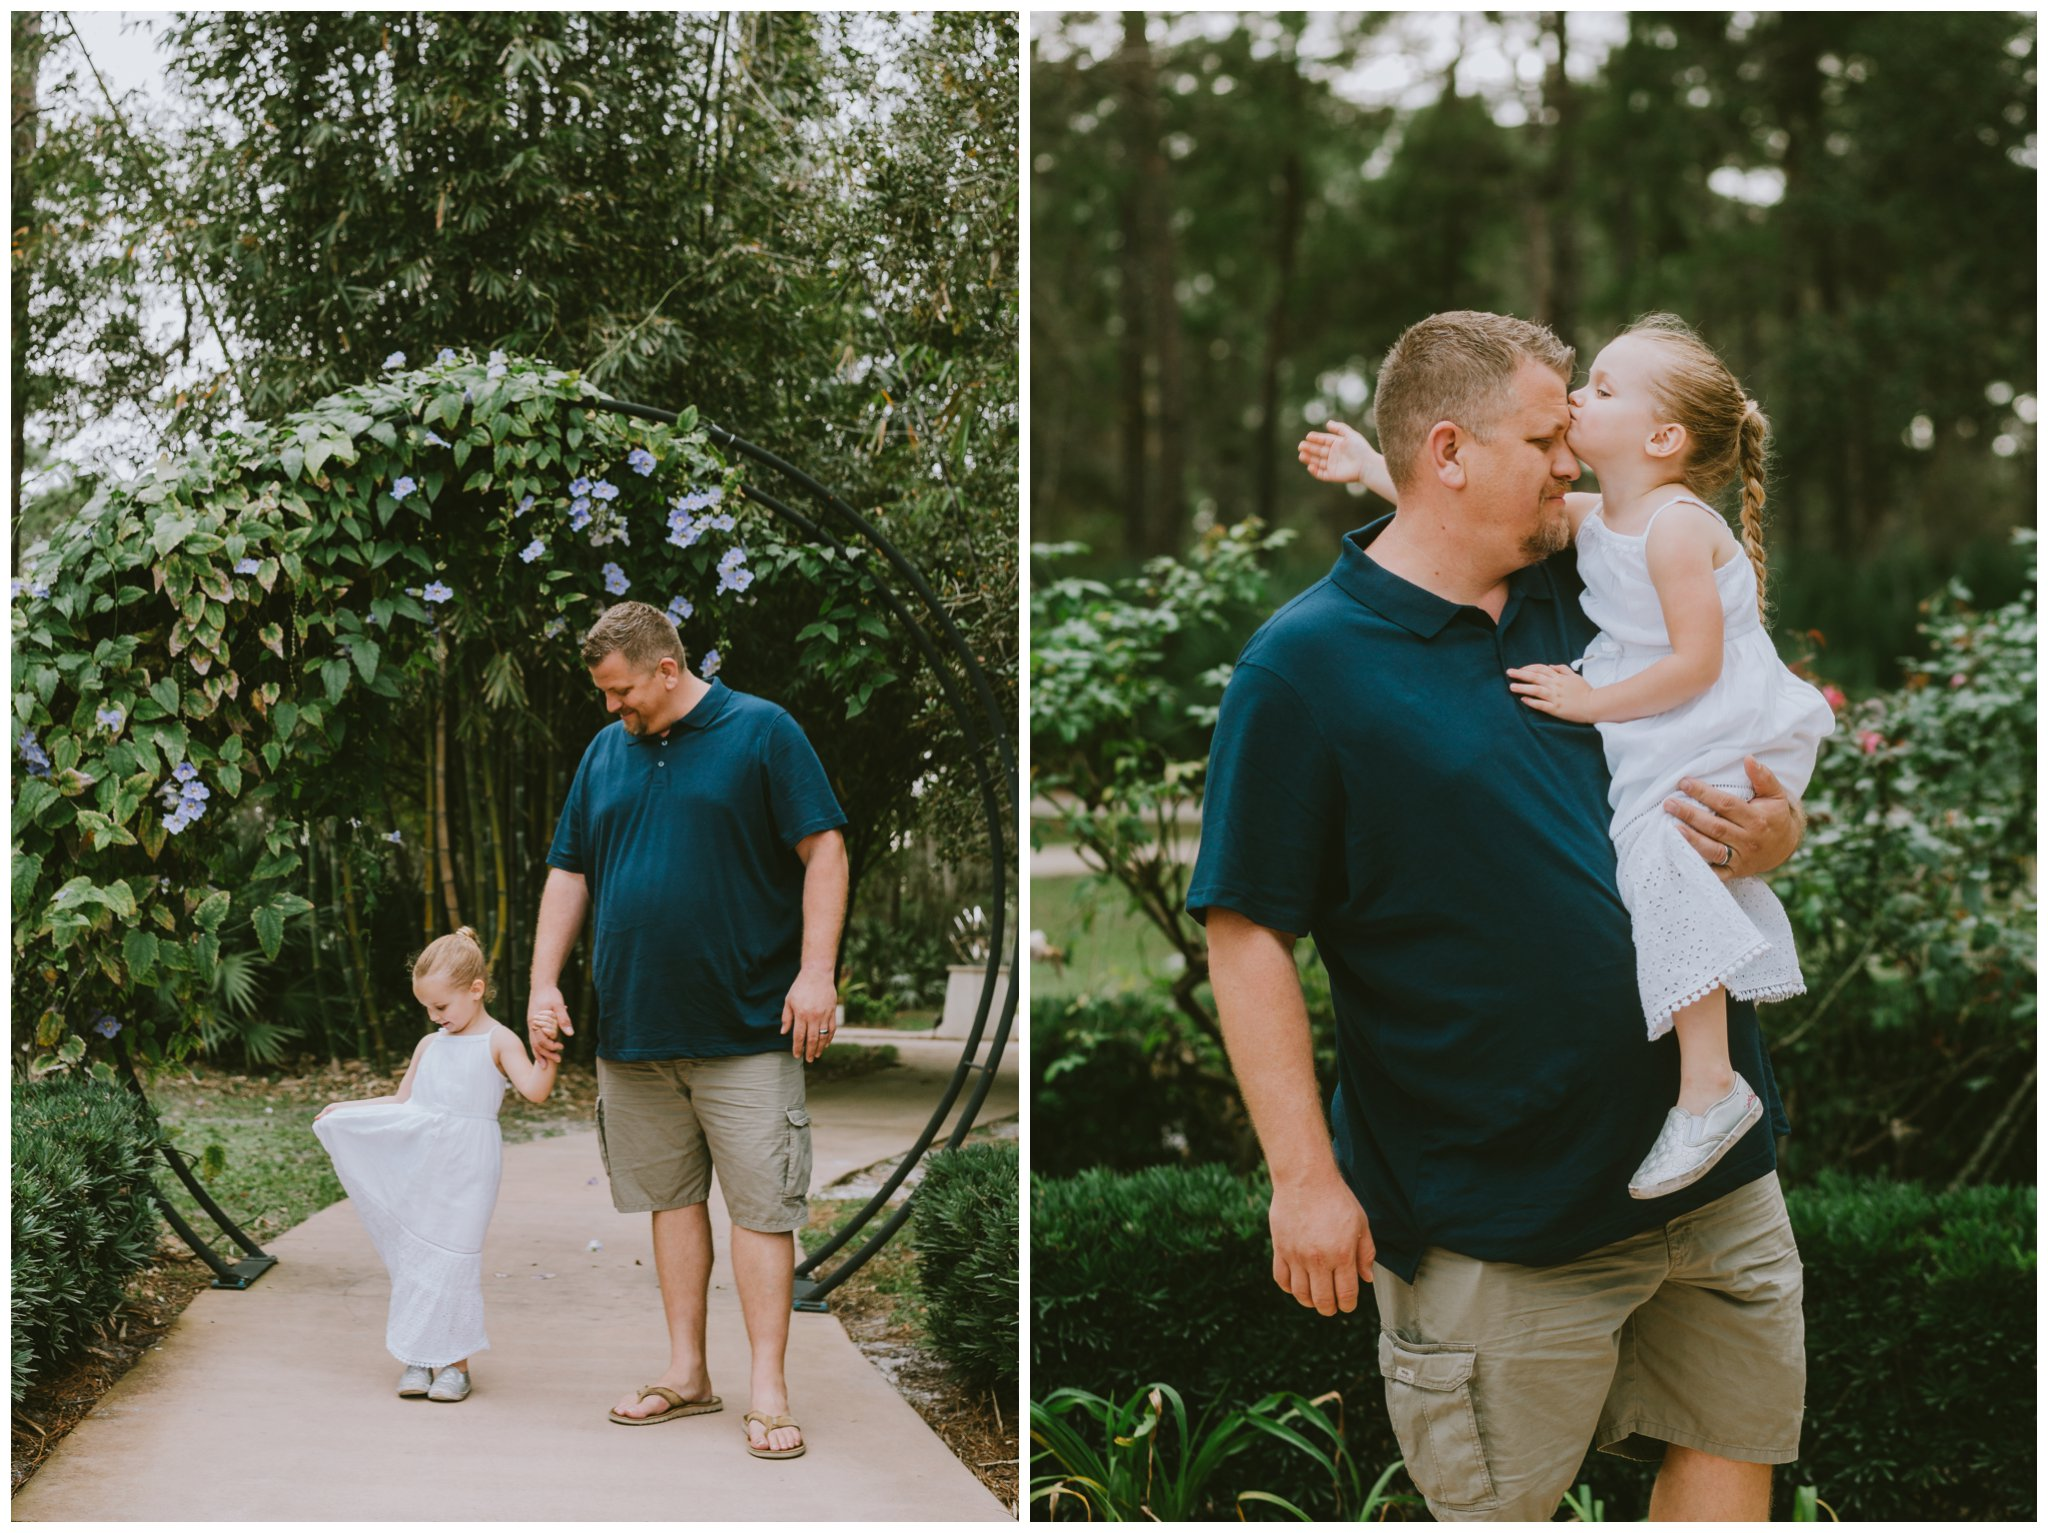 Kimberly Smith Photography| Port St Lucie Botanical Gardens| Maternity Photos| Jupiter Florida Photographer | Stuart Fl photographer_0203.jpg